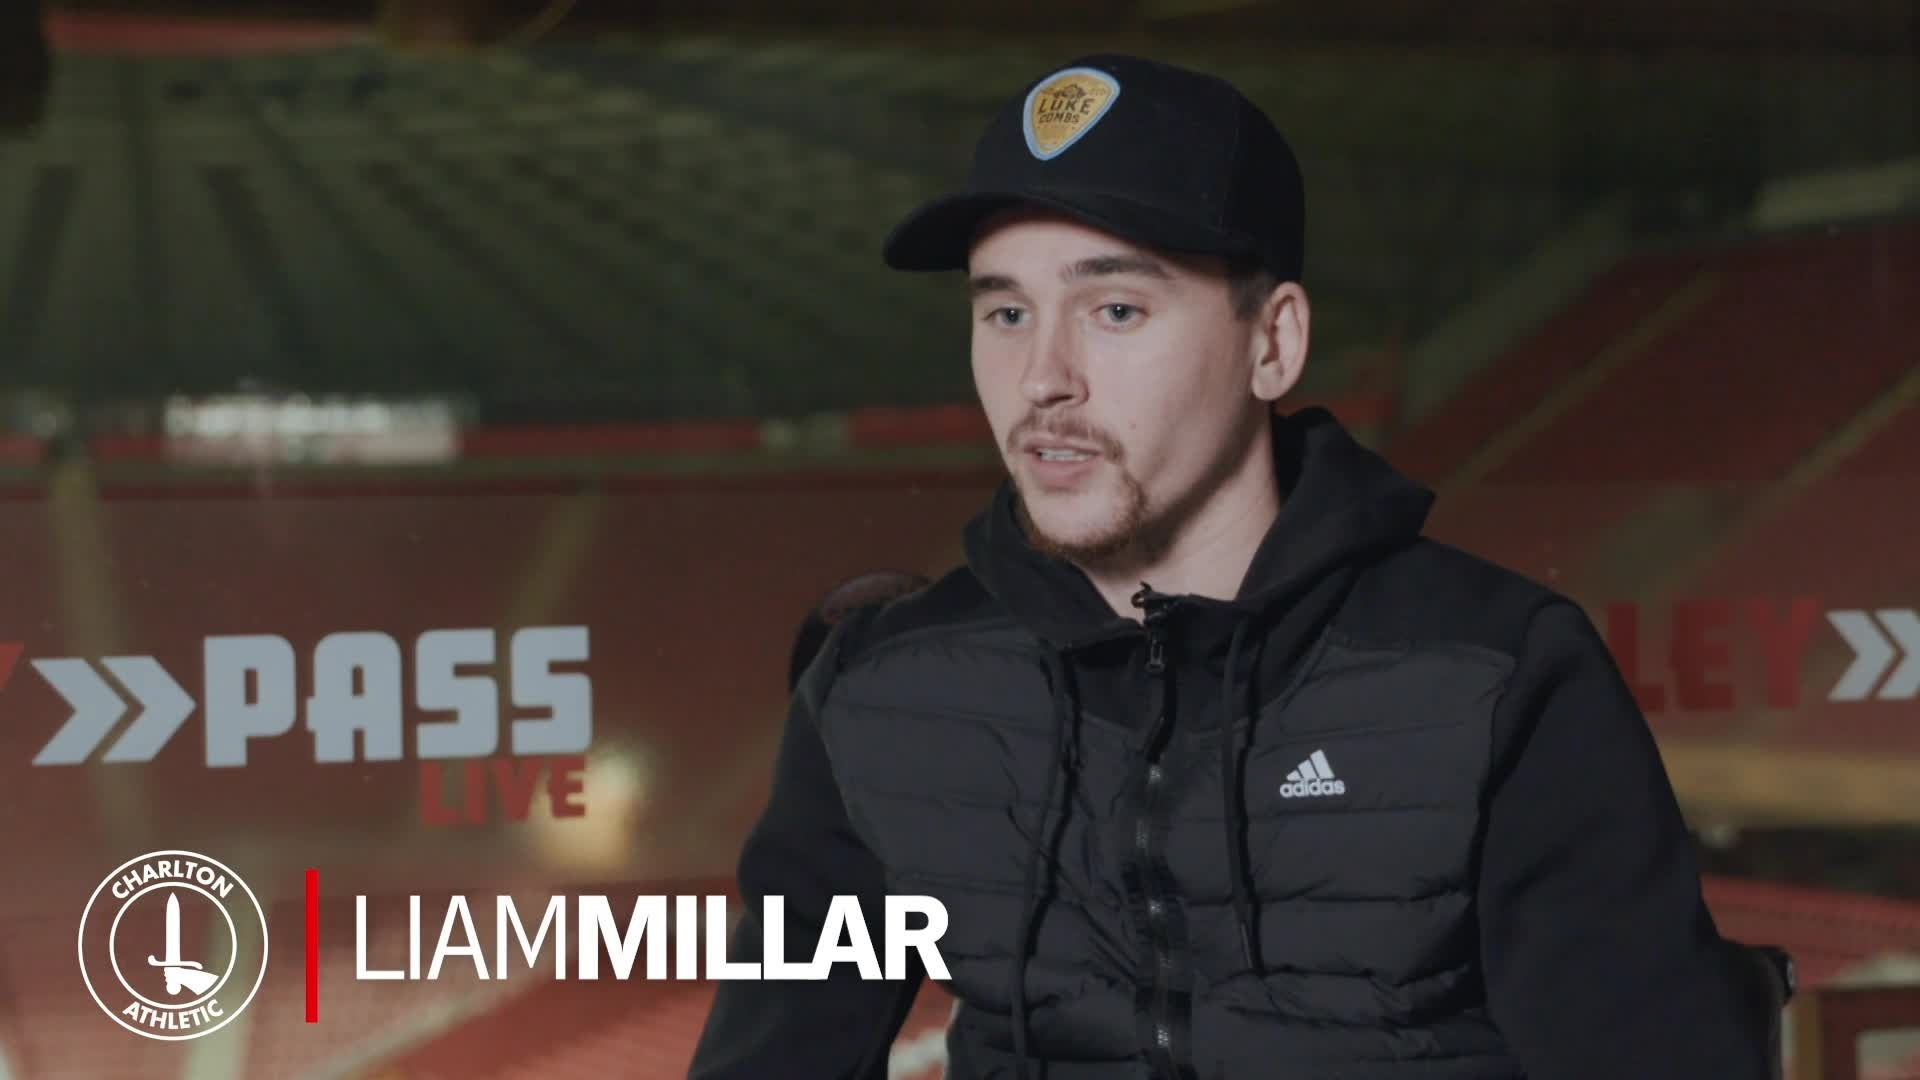 Preview | Liam Millar's first Charlton interview (January 2021)